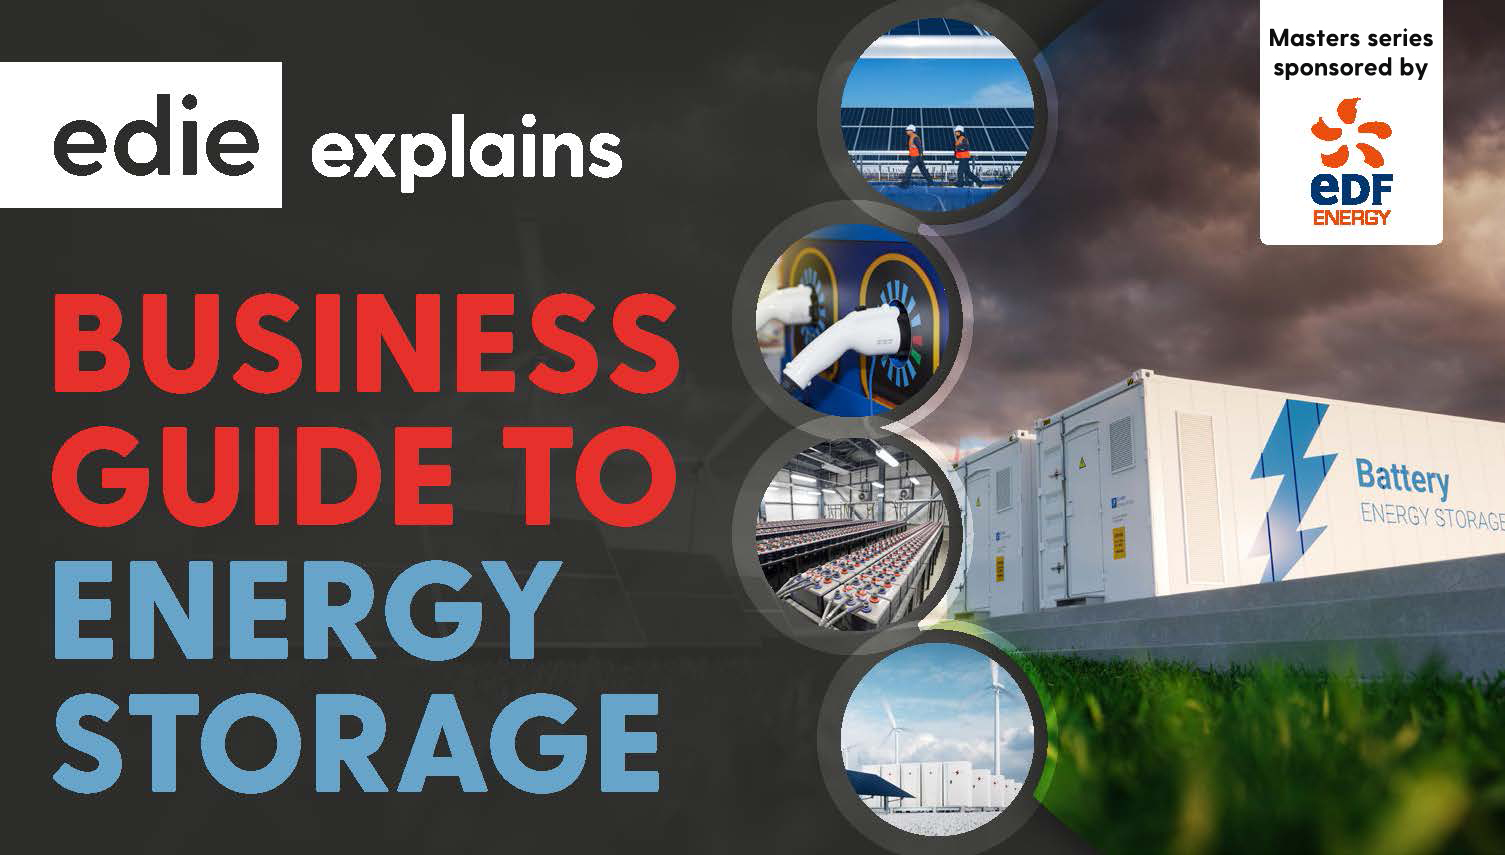 The business guide to energy storage - edie.net